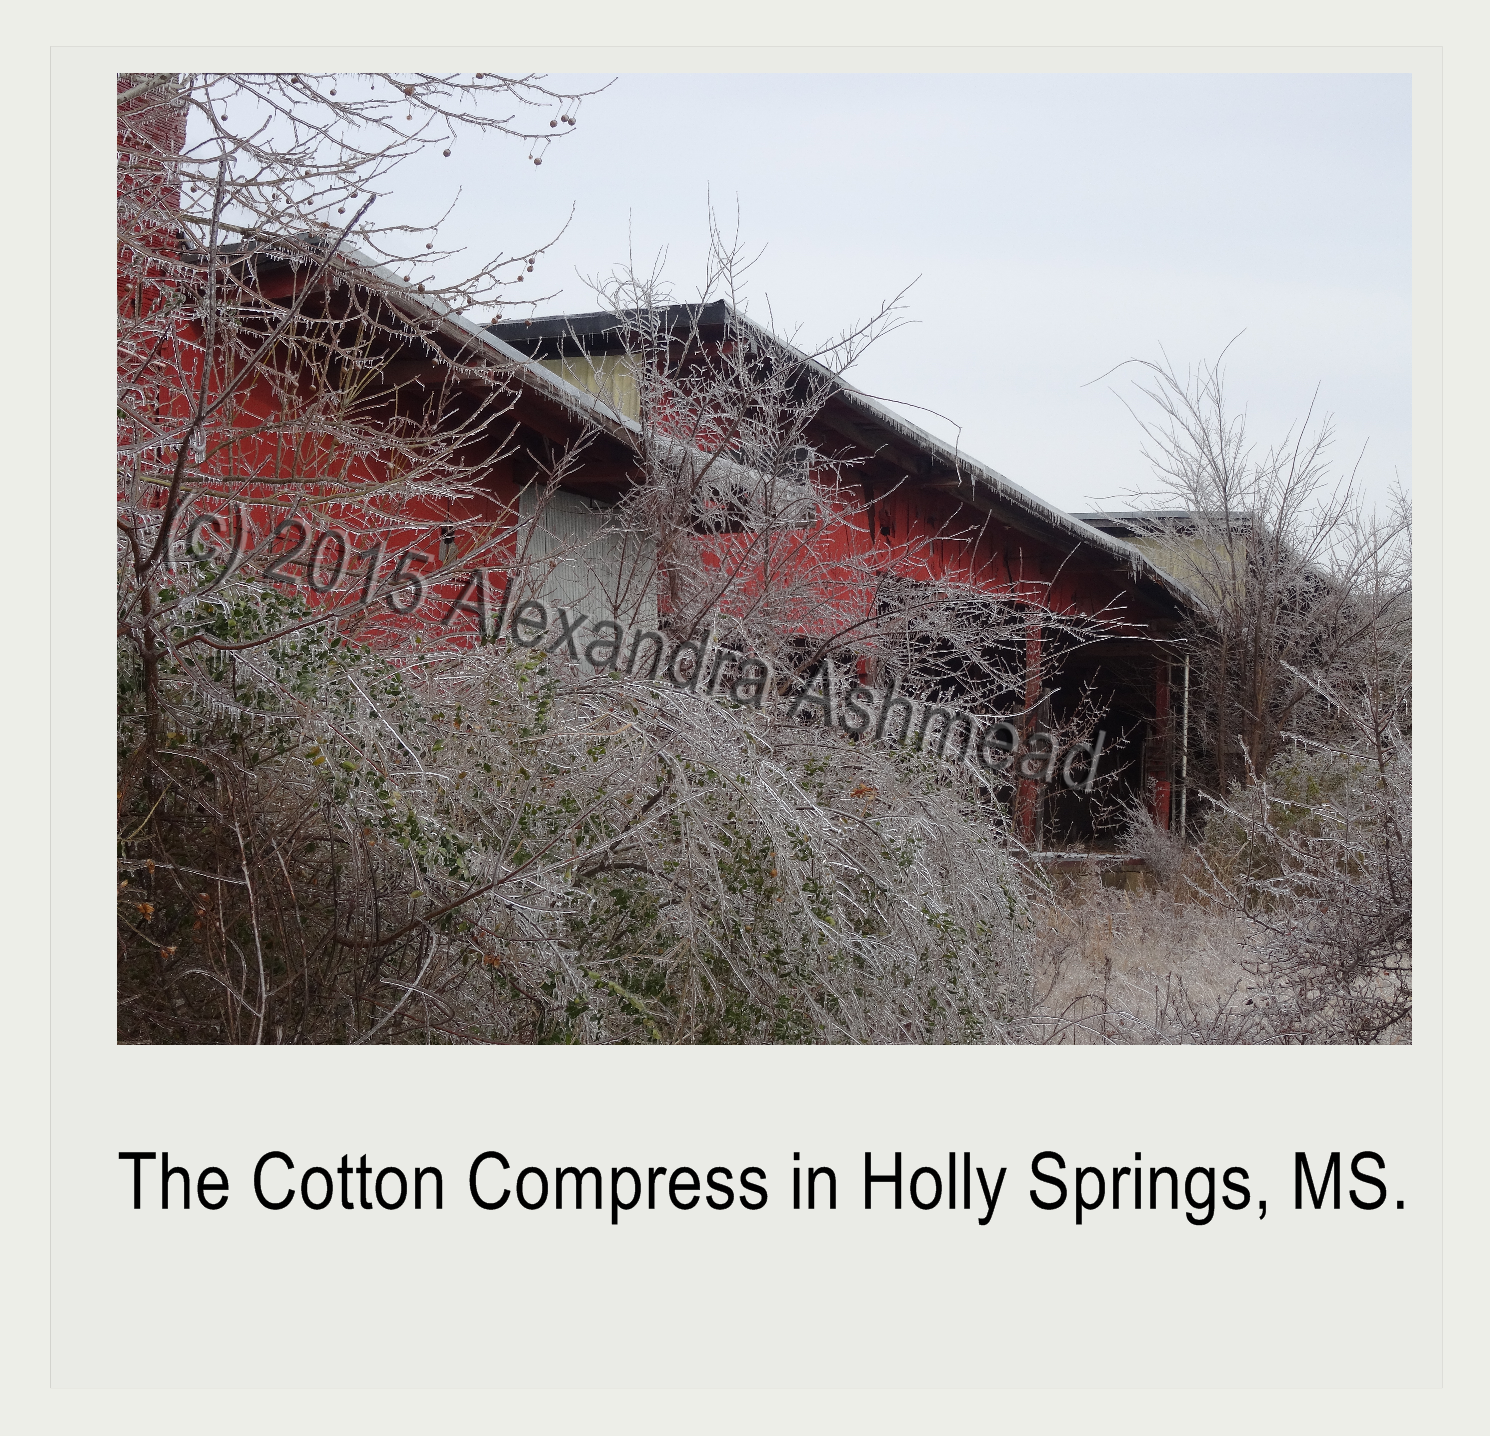 Holly Springs Cotton Compress After a Snow Storm (c) 2015 Alexandra Ashmead